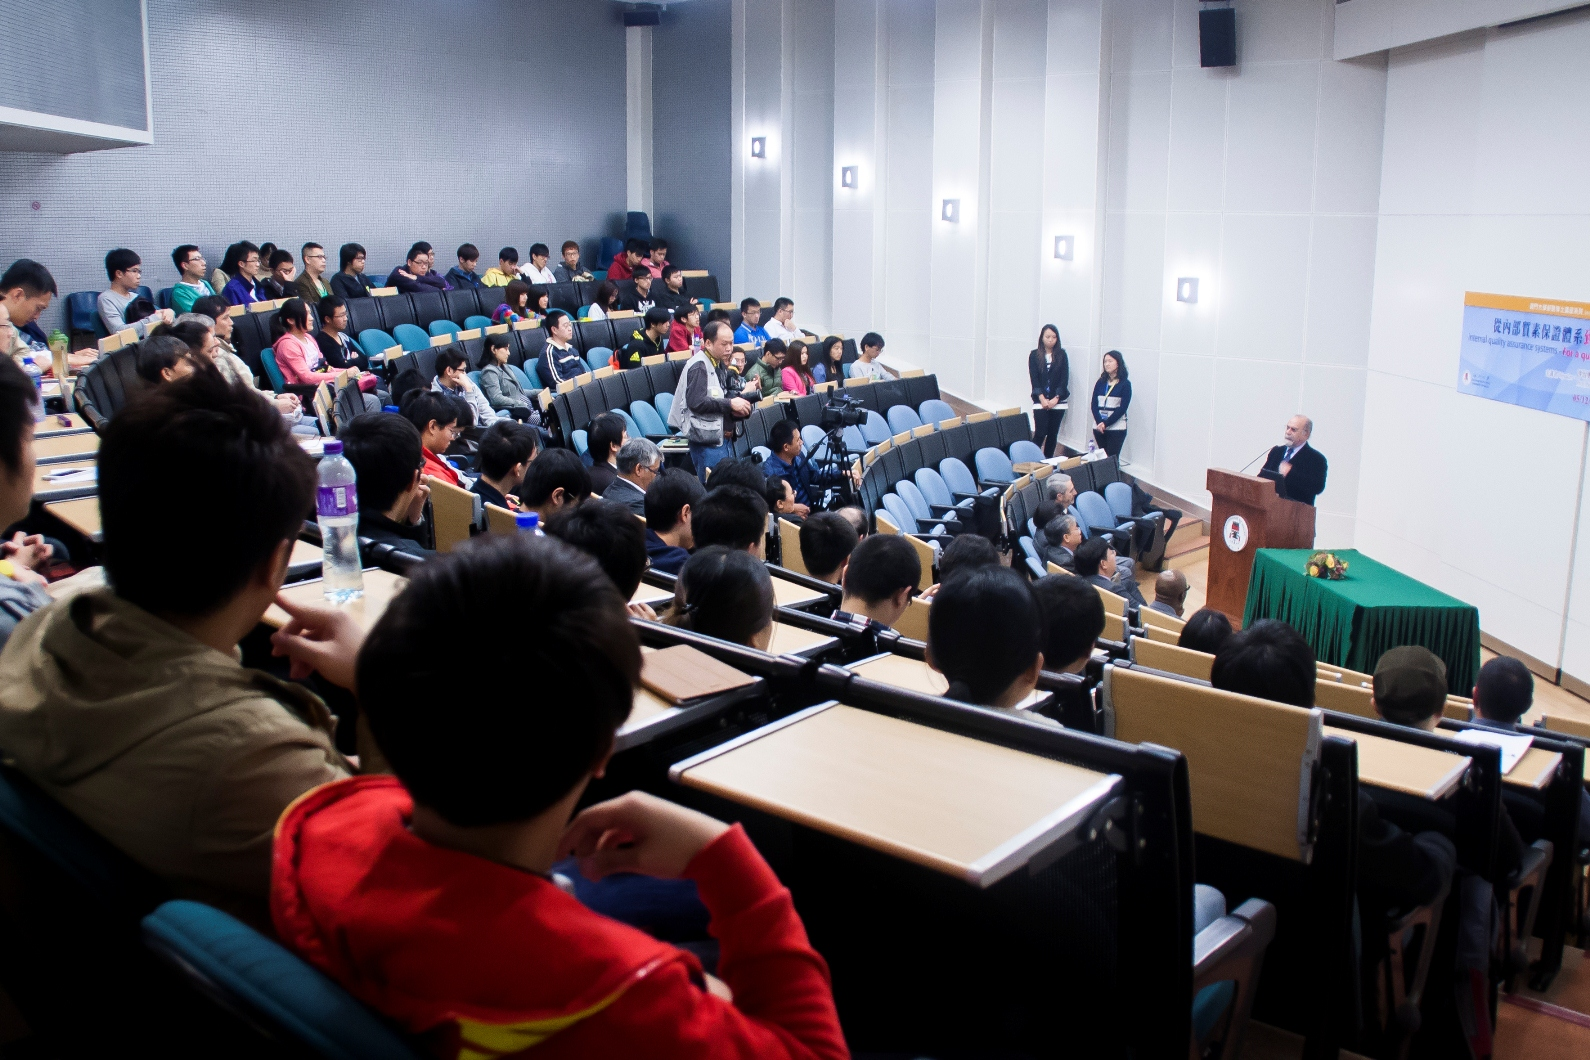 The talk attracts hundreds of students and faculty members